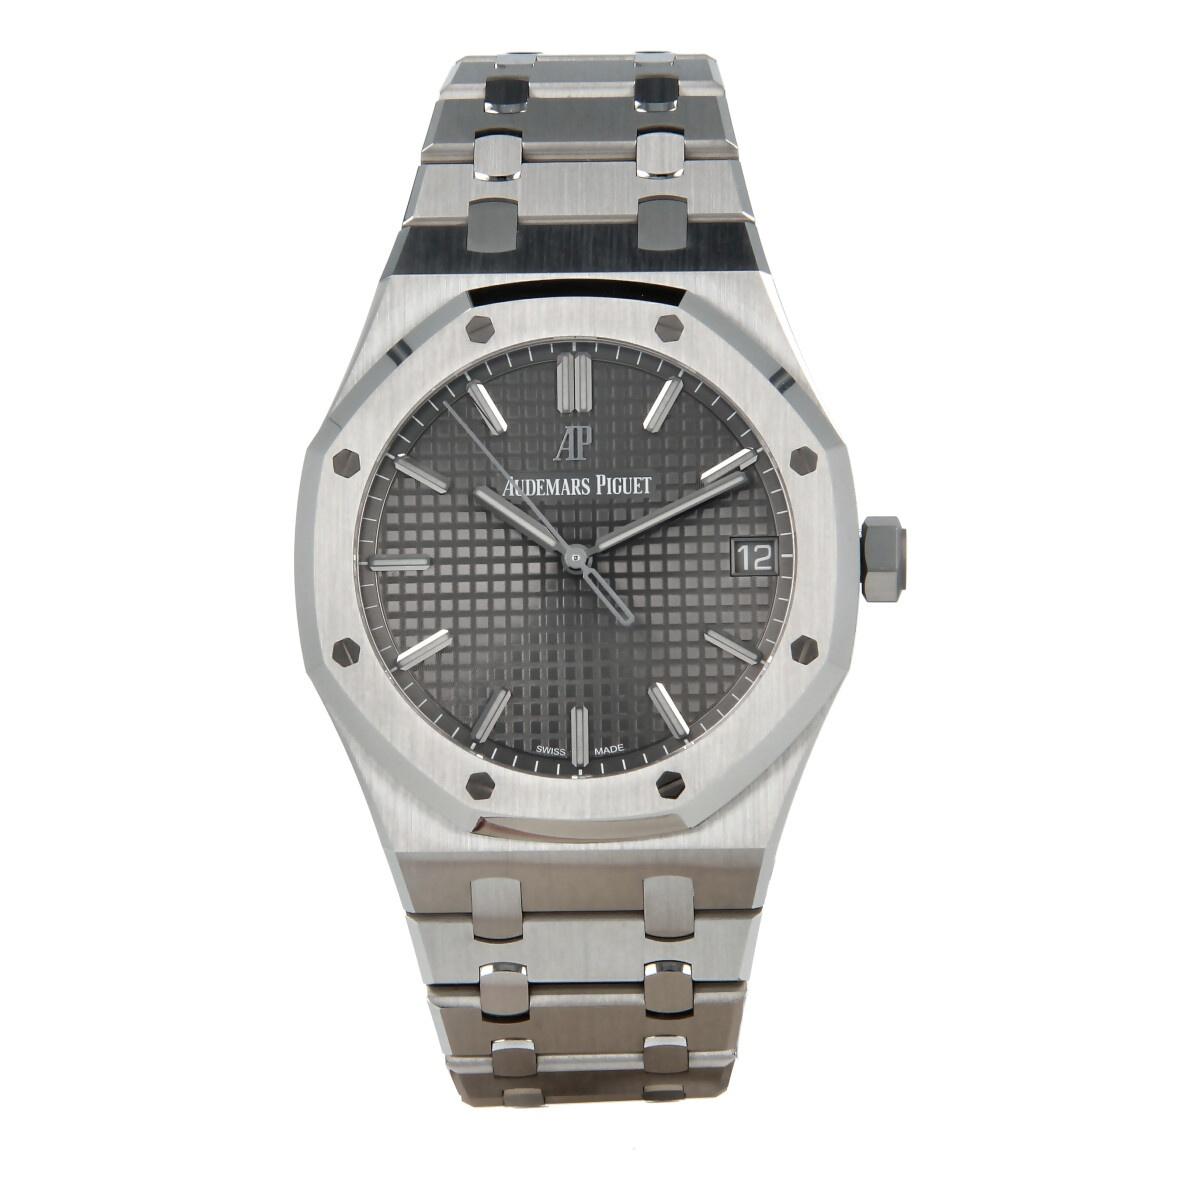 Audemars Piguet Royal Oak 15500ST Grey Dial *Brand-New* | Audemars Piguet